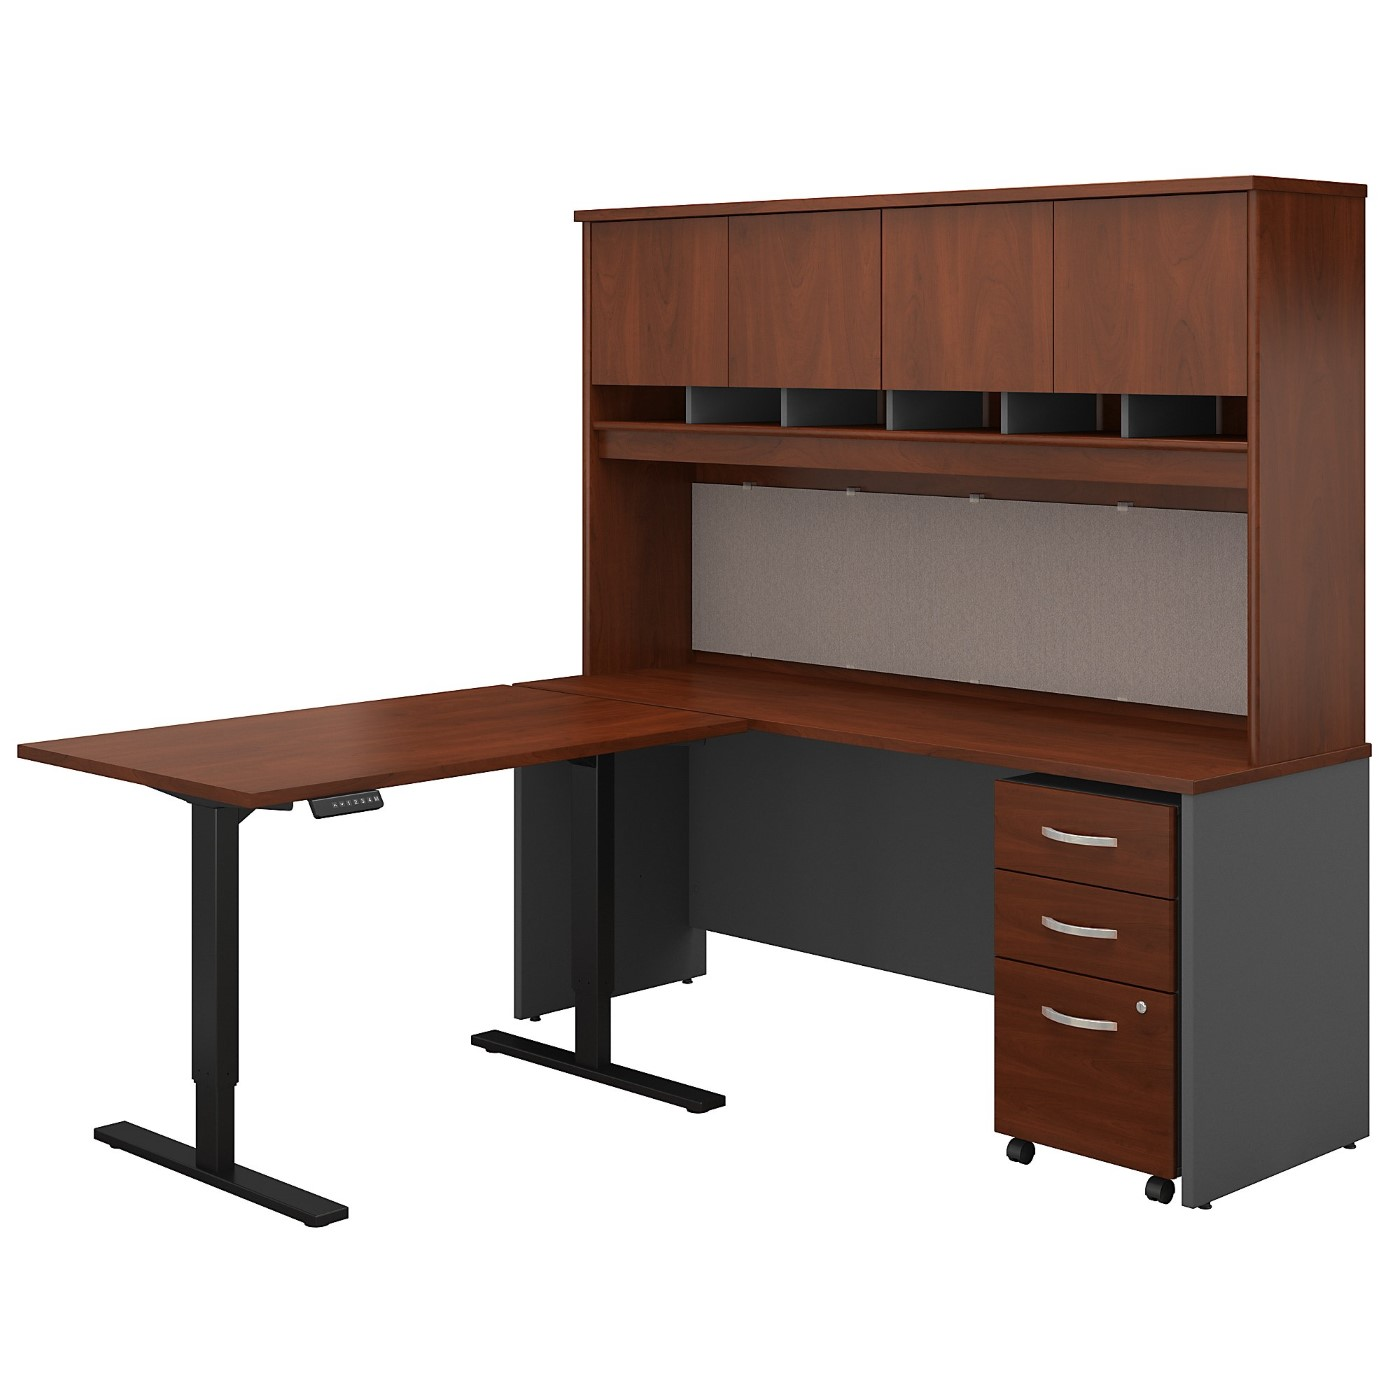 BUSH BUSINESS FURNITURE SERIES C 72W L SHAPED DESK WITH 48W HEIGHT ADJUSTABLE RETURN, HUTCH AND STORAGE. FREE SHIPPING